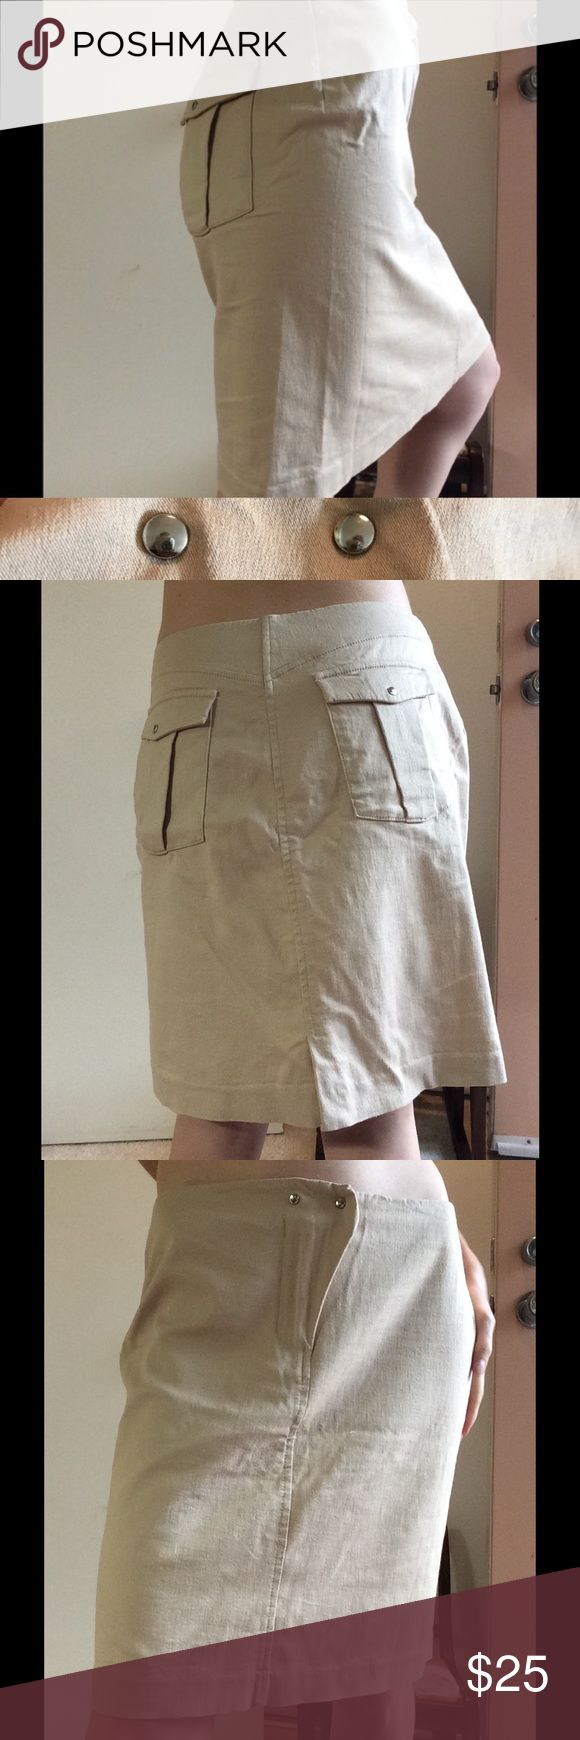 "[Single Noble] Casual Beige Cowgirl Pocket pencil Great condition. Super stretchy. I can not read the fabric tag but there are three kinds in it. Silver hardware. Double breasted studs at the top of the front zipper. Classy. Glamorous. Back to basics. Professional business attire. Working gal. Flap back pockets with snaps. Measurements laying flat: waist 15"", made for a woman with curvy hips. Length is 17.5"", hips 18"" cream color. Wear with cowboy boots for funky style. Skirts B Nordstrom…"